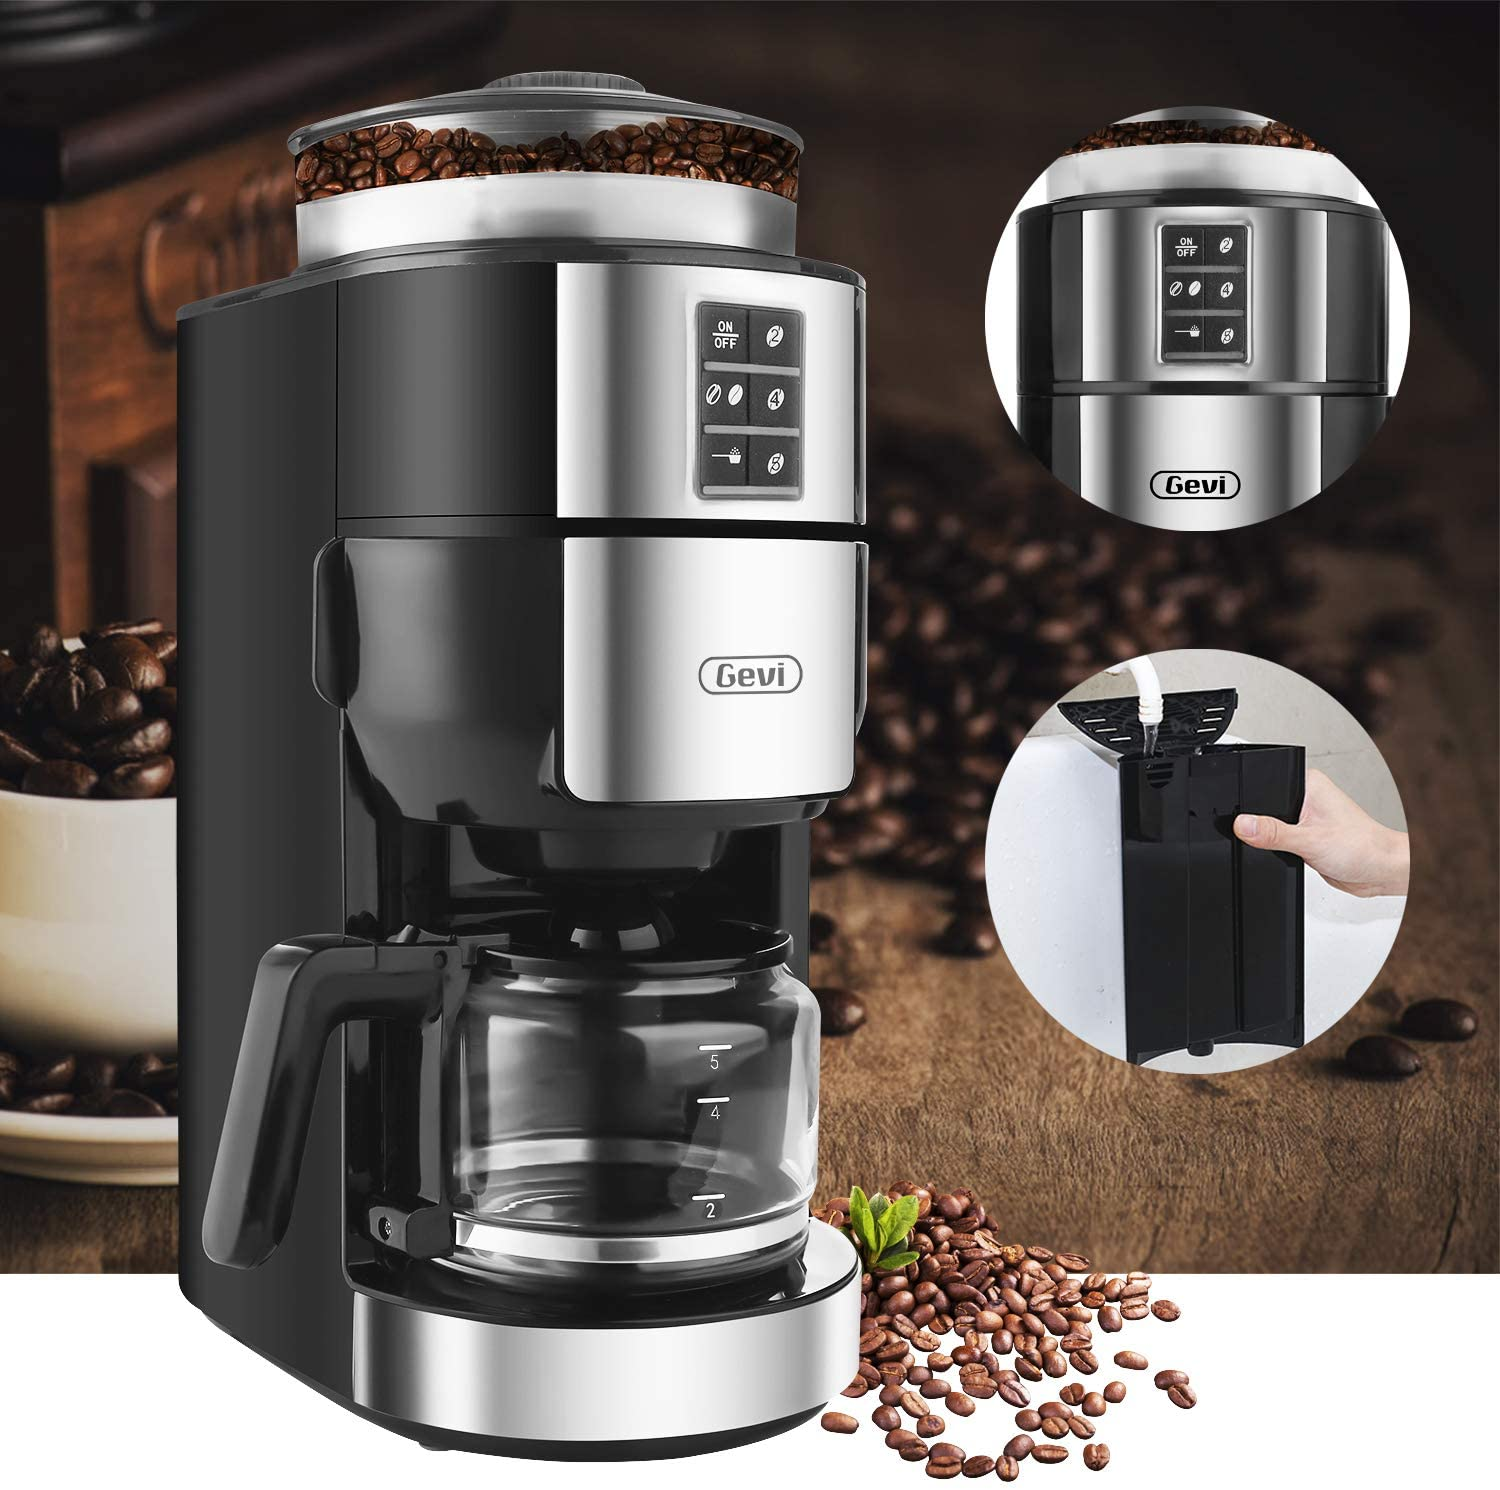 You are currently viewing Grind and Brew Coffee Maker with Grinder, Gevi 5-Cup Programmable Coffee Maker